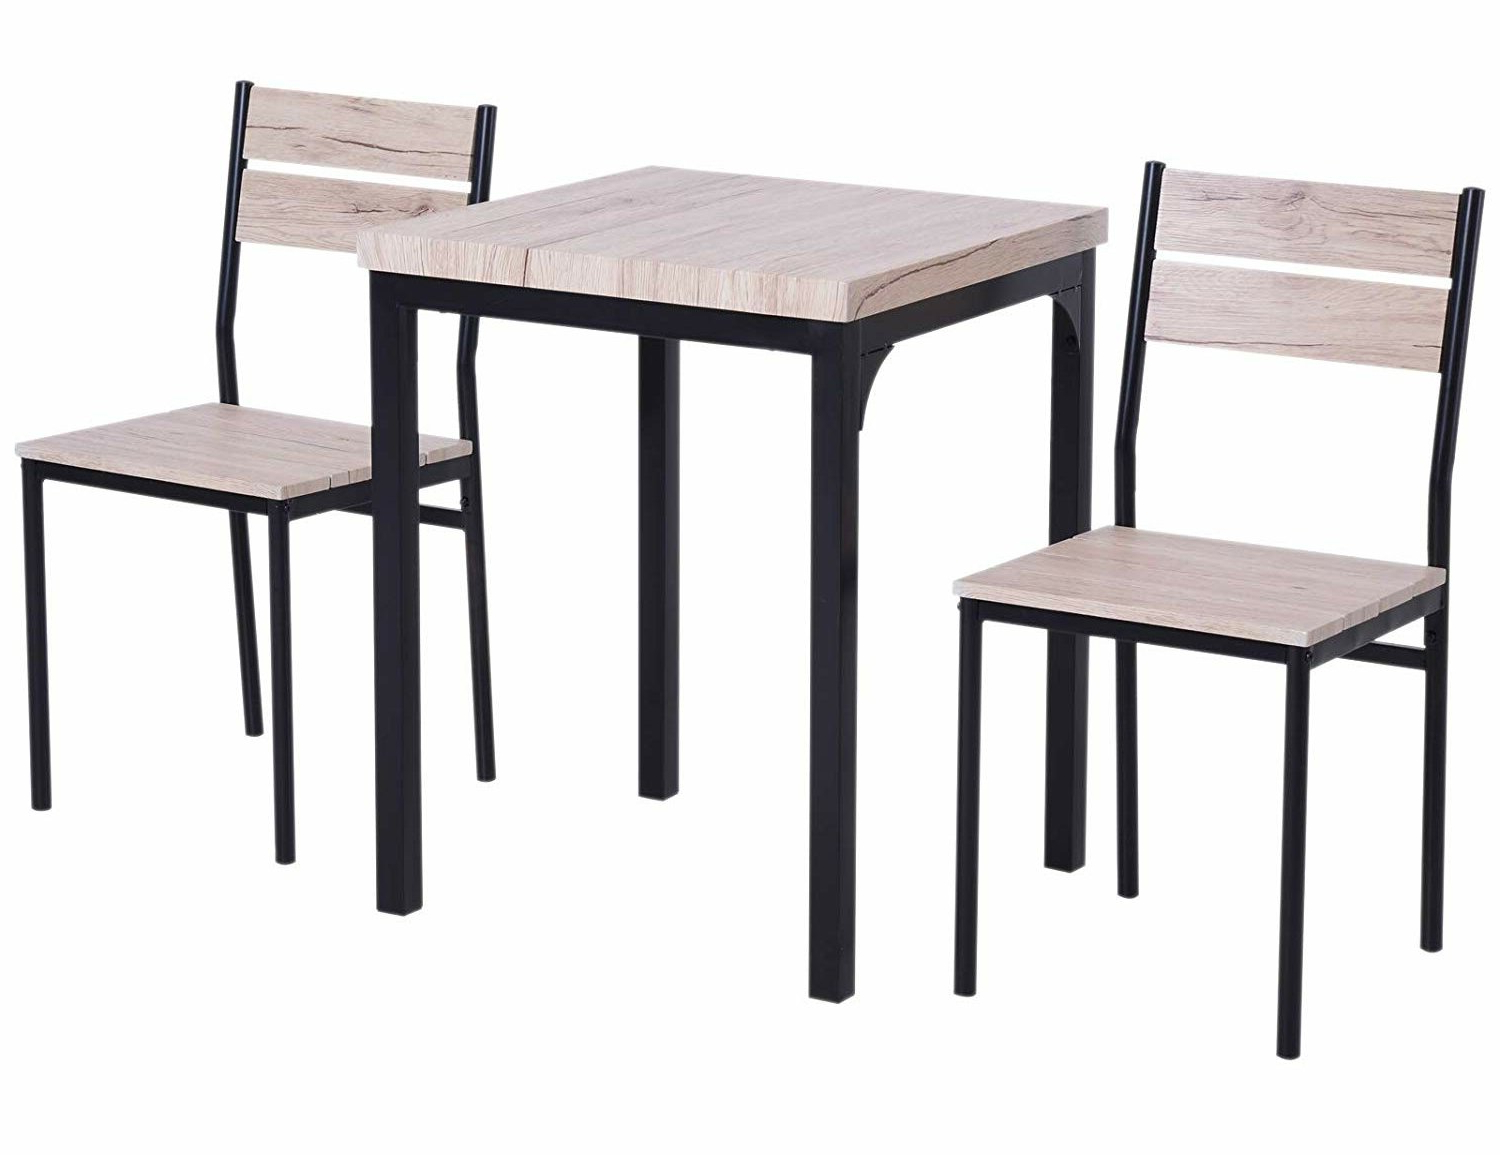 Favorite Staley Rustic Country 3 Piece Dining Set Pertaining To Weatherholt Dining Tables (Gallery 9 of 20)